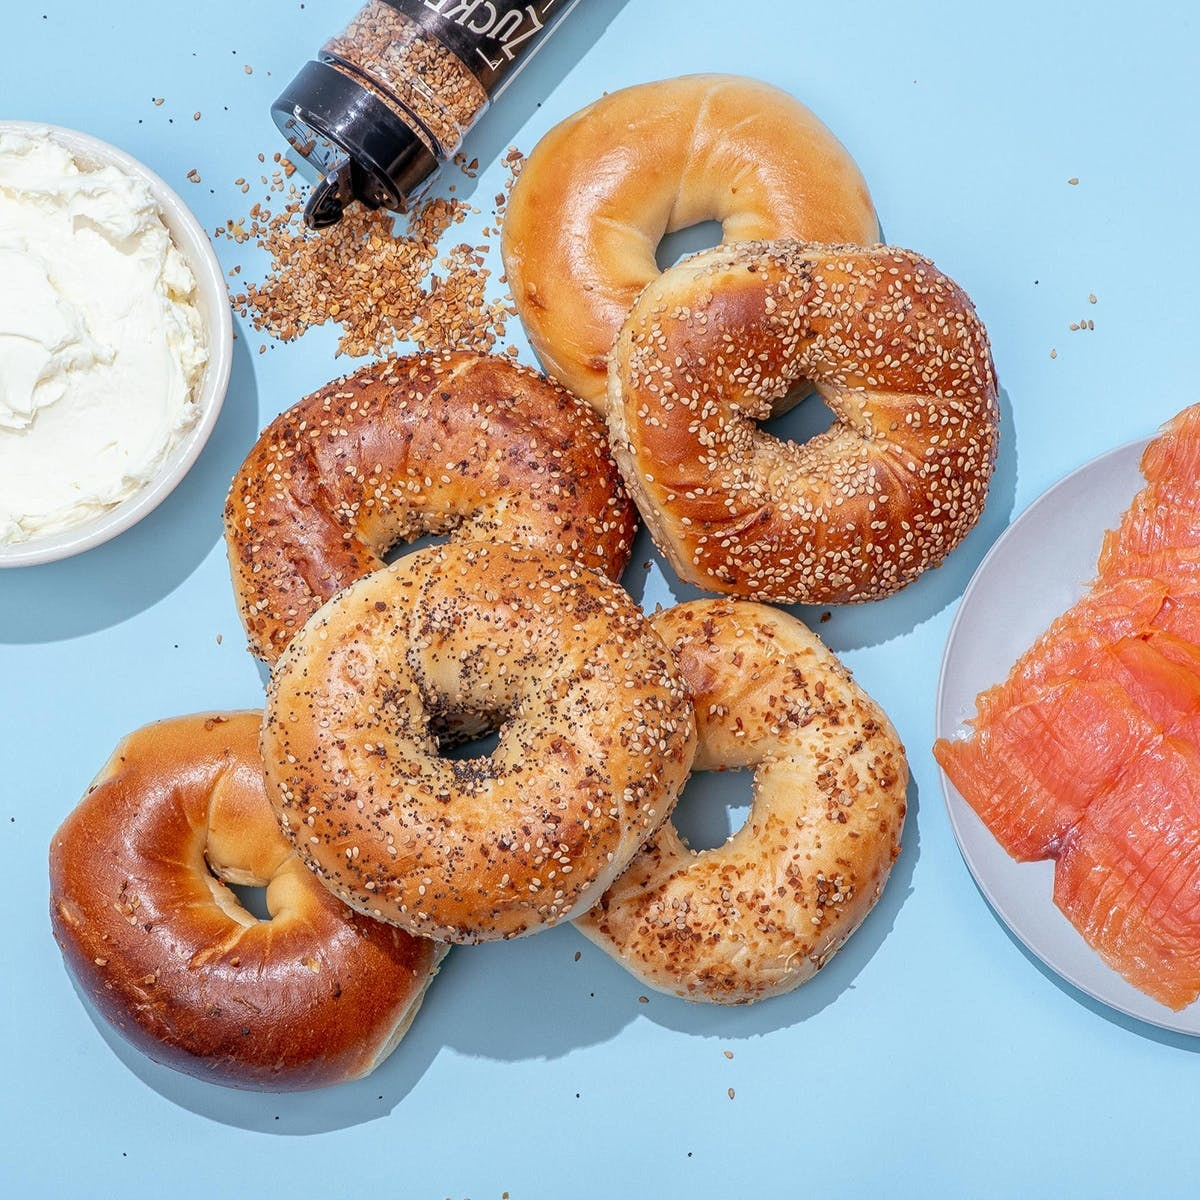 six bagels next to seasoning, lox, and cream cheese